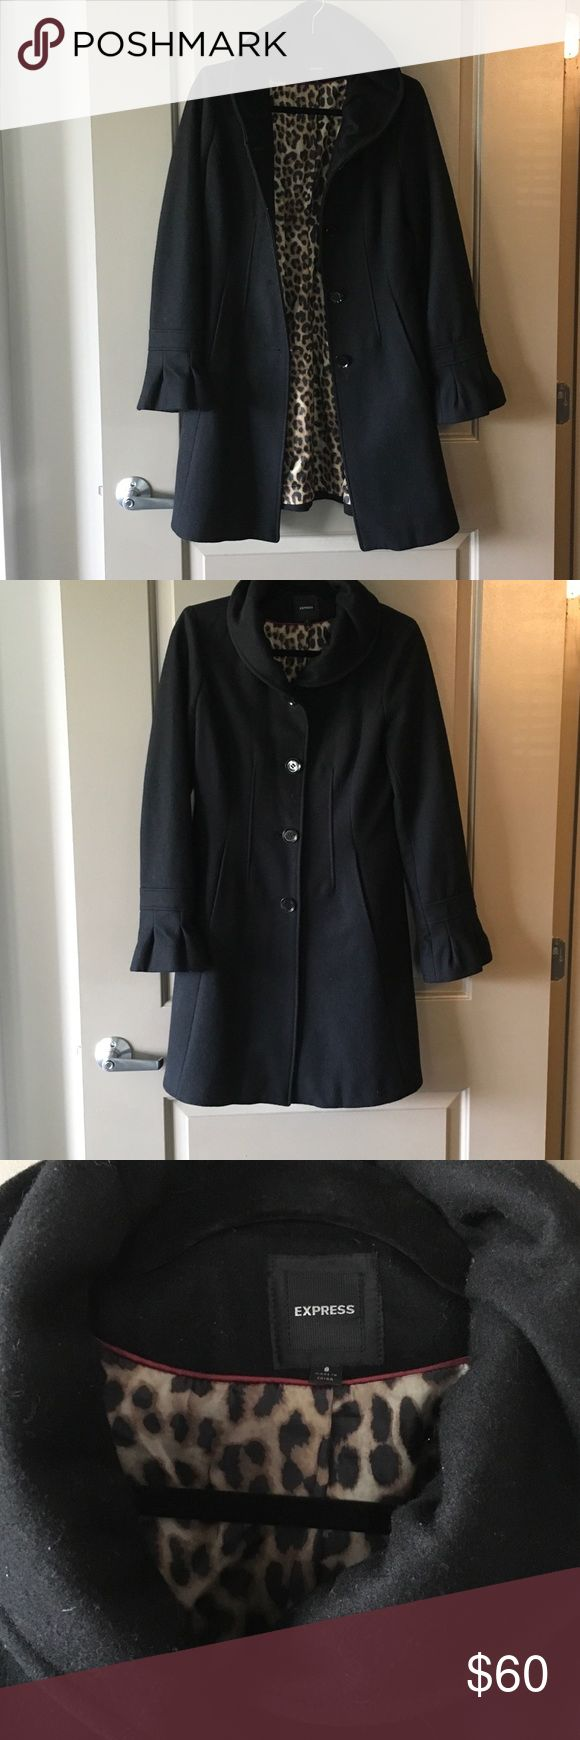 Express coat Black wool jacket from Express. Leopard silk lined. Missing two black buttons on back. Size Small Express Jackets & Coats Pea Coats